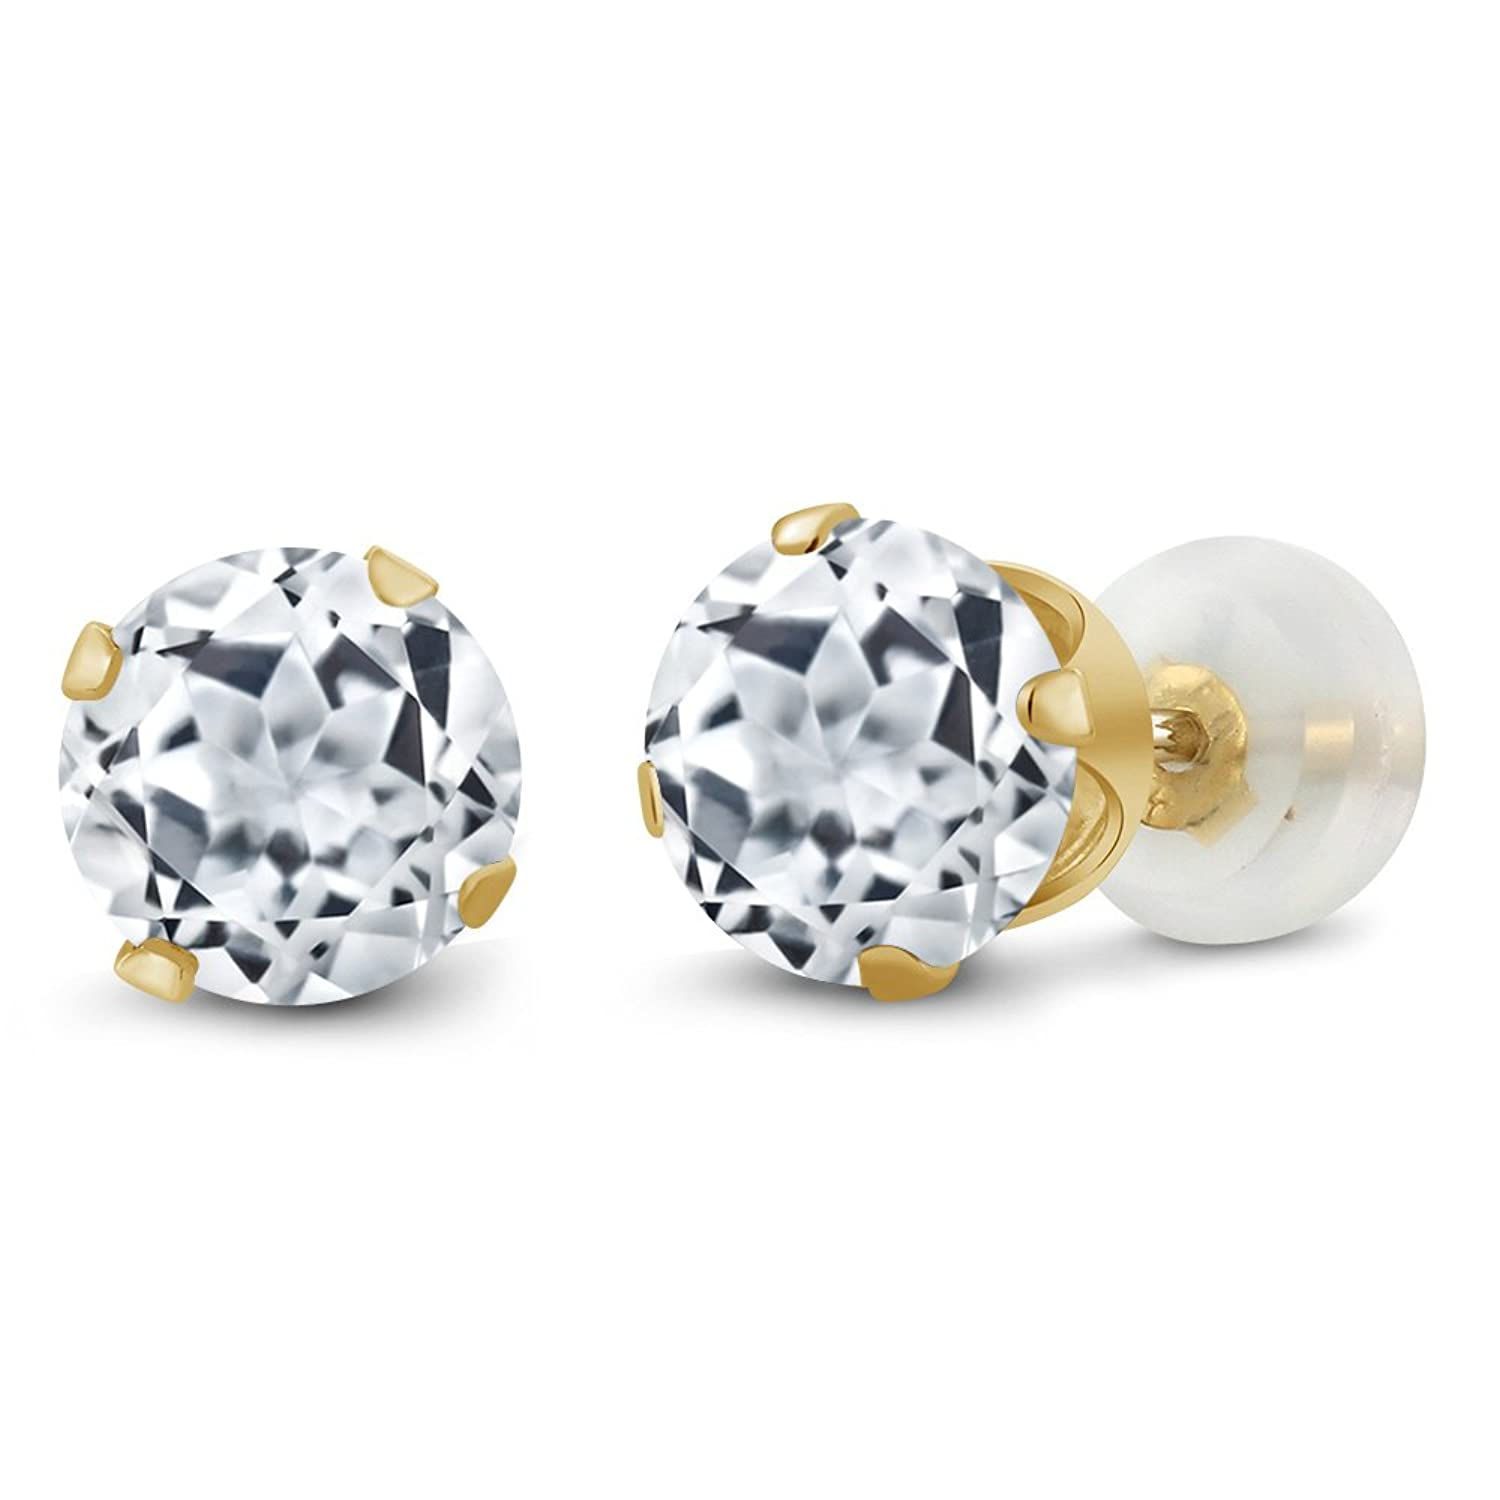 1.80 Ct Round 6mm White Topaz 10K Yellow Gold Stud Earrings